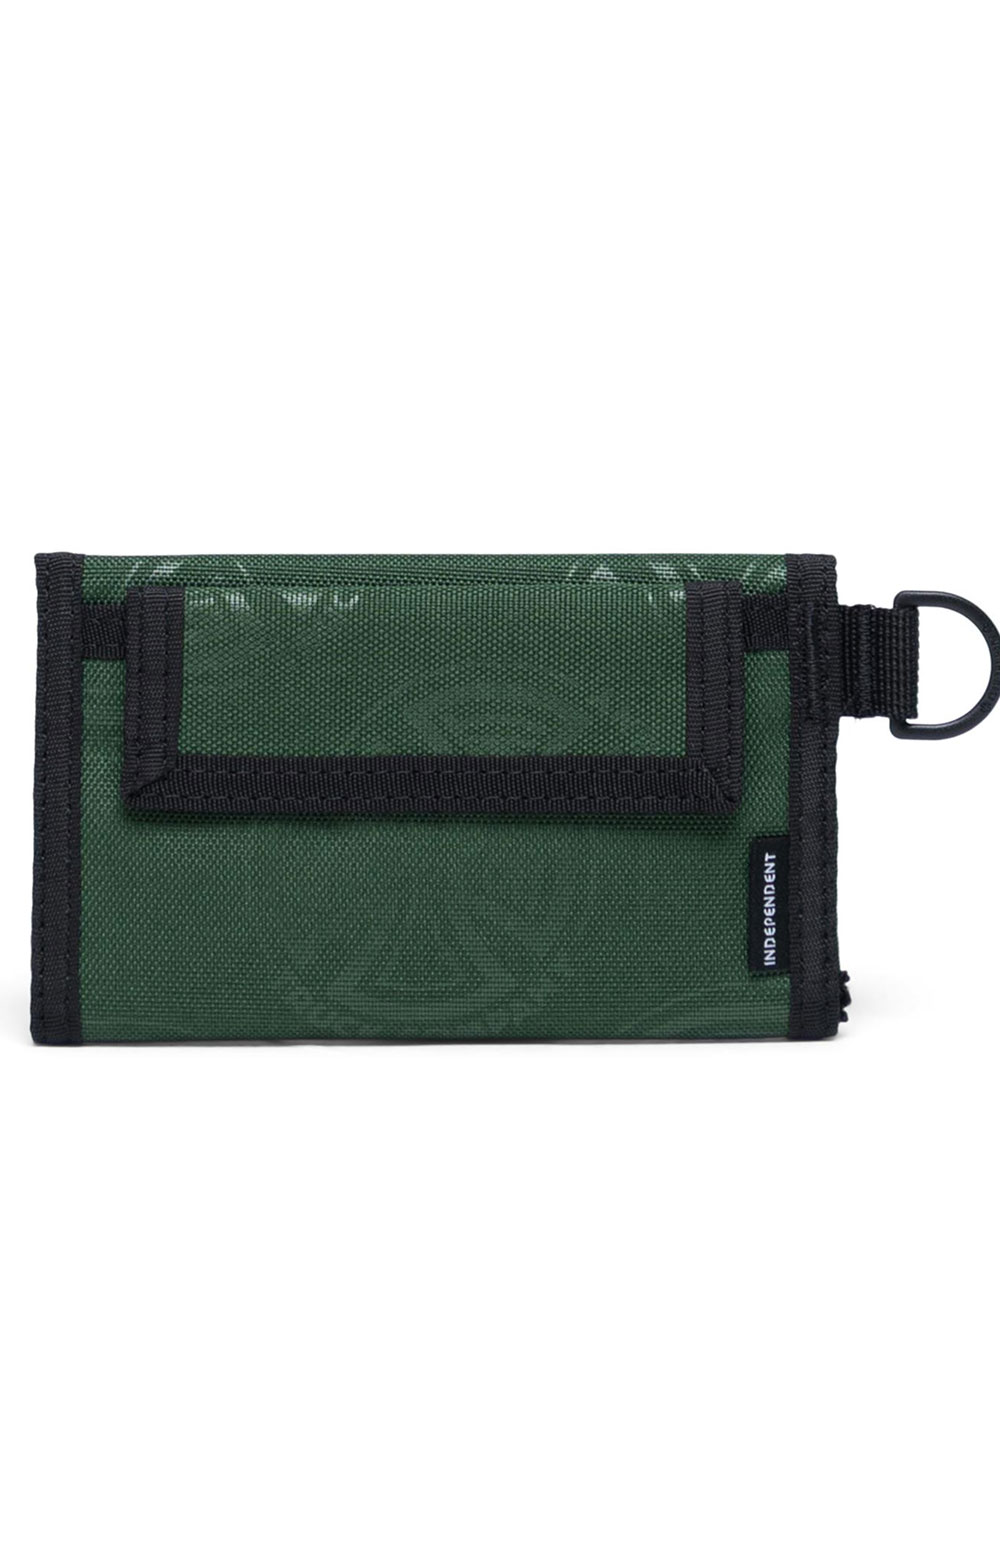 Fairway Wallet - Independent Multi Cross Greener Pastures 3